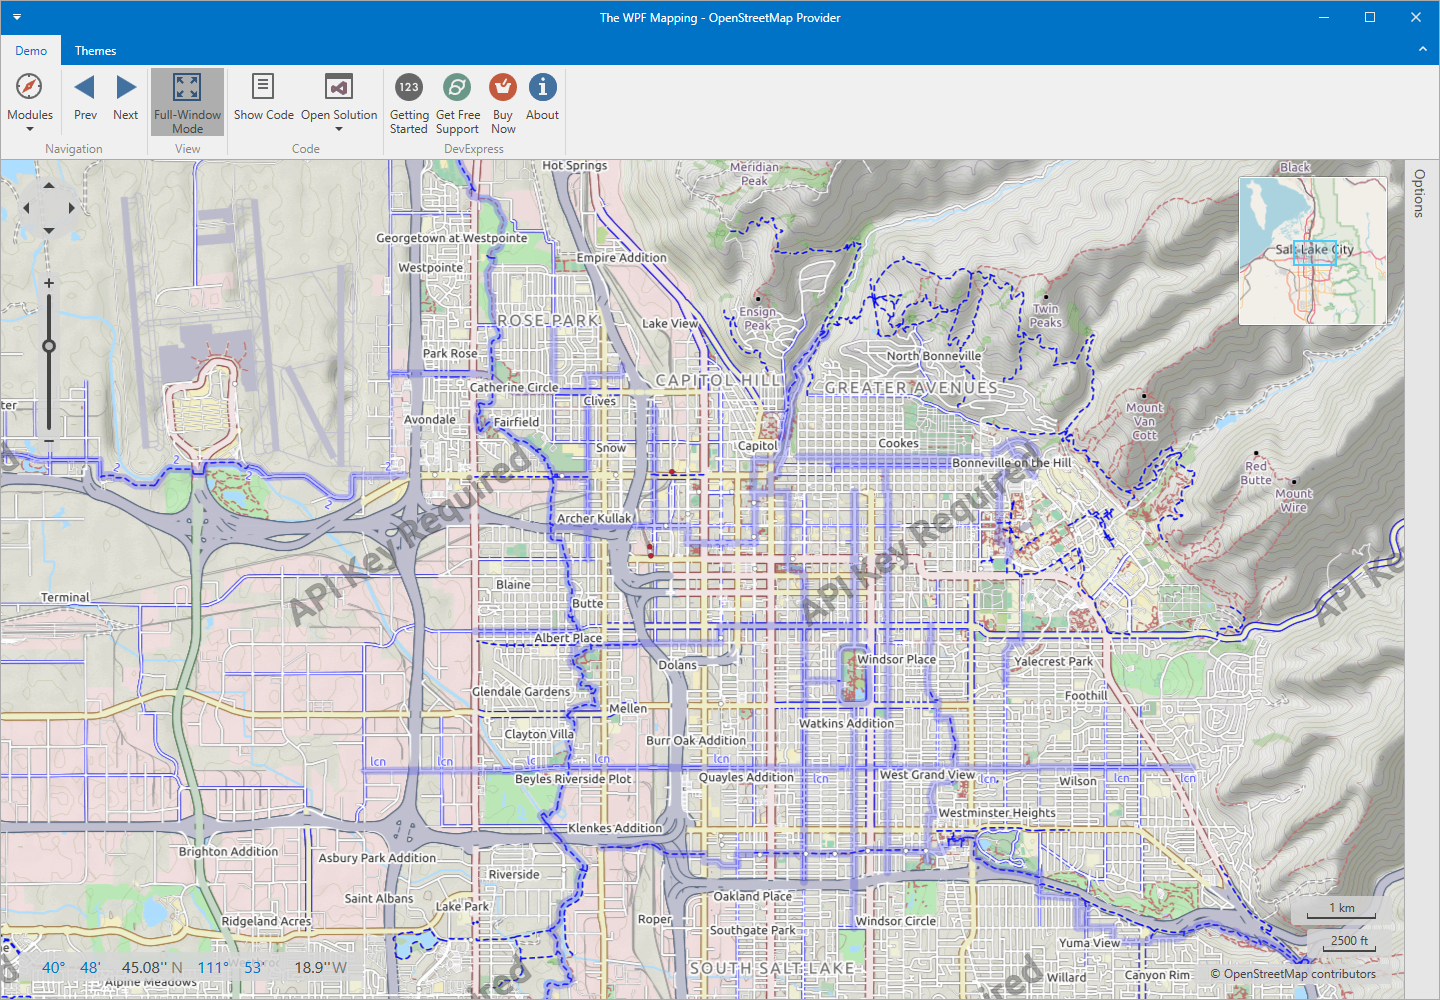 WPF Mapping - OpenStreetMap Provider